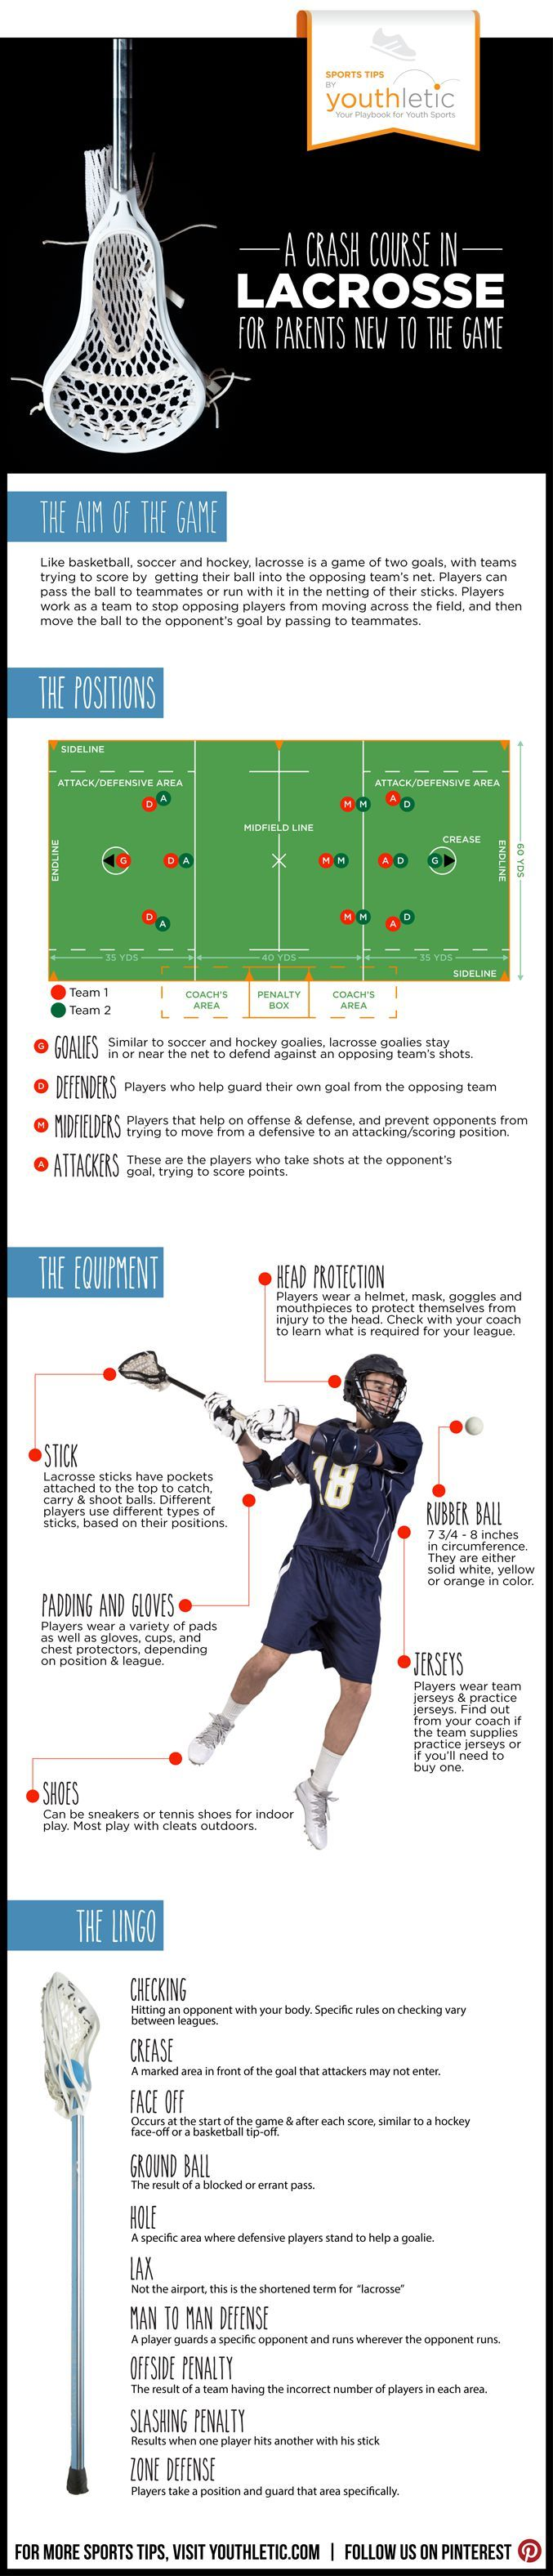 An infographic designed to help parents learn about the game, team structure, gear, and rules of lacrosse #lax #parenting #lacrosse: https://www.youthletic.com/articles/infographic-a-crash-course-for-lacrosse-parents-new-to-the-game/?utm_source=pinterest&utm_medium=referral&utm_campaign=organic